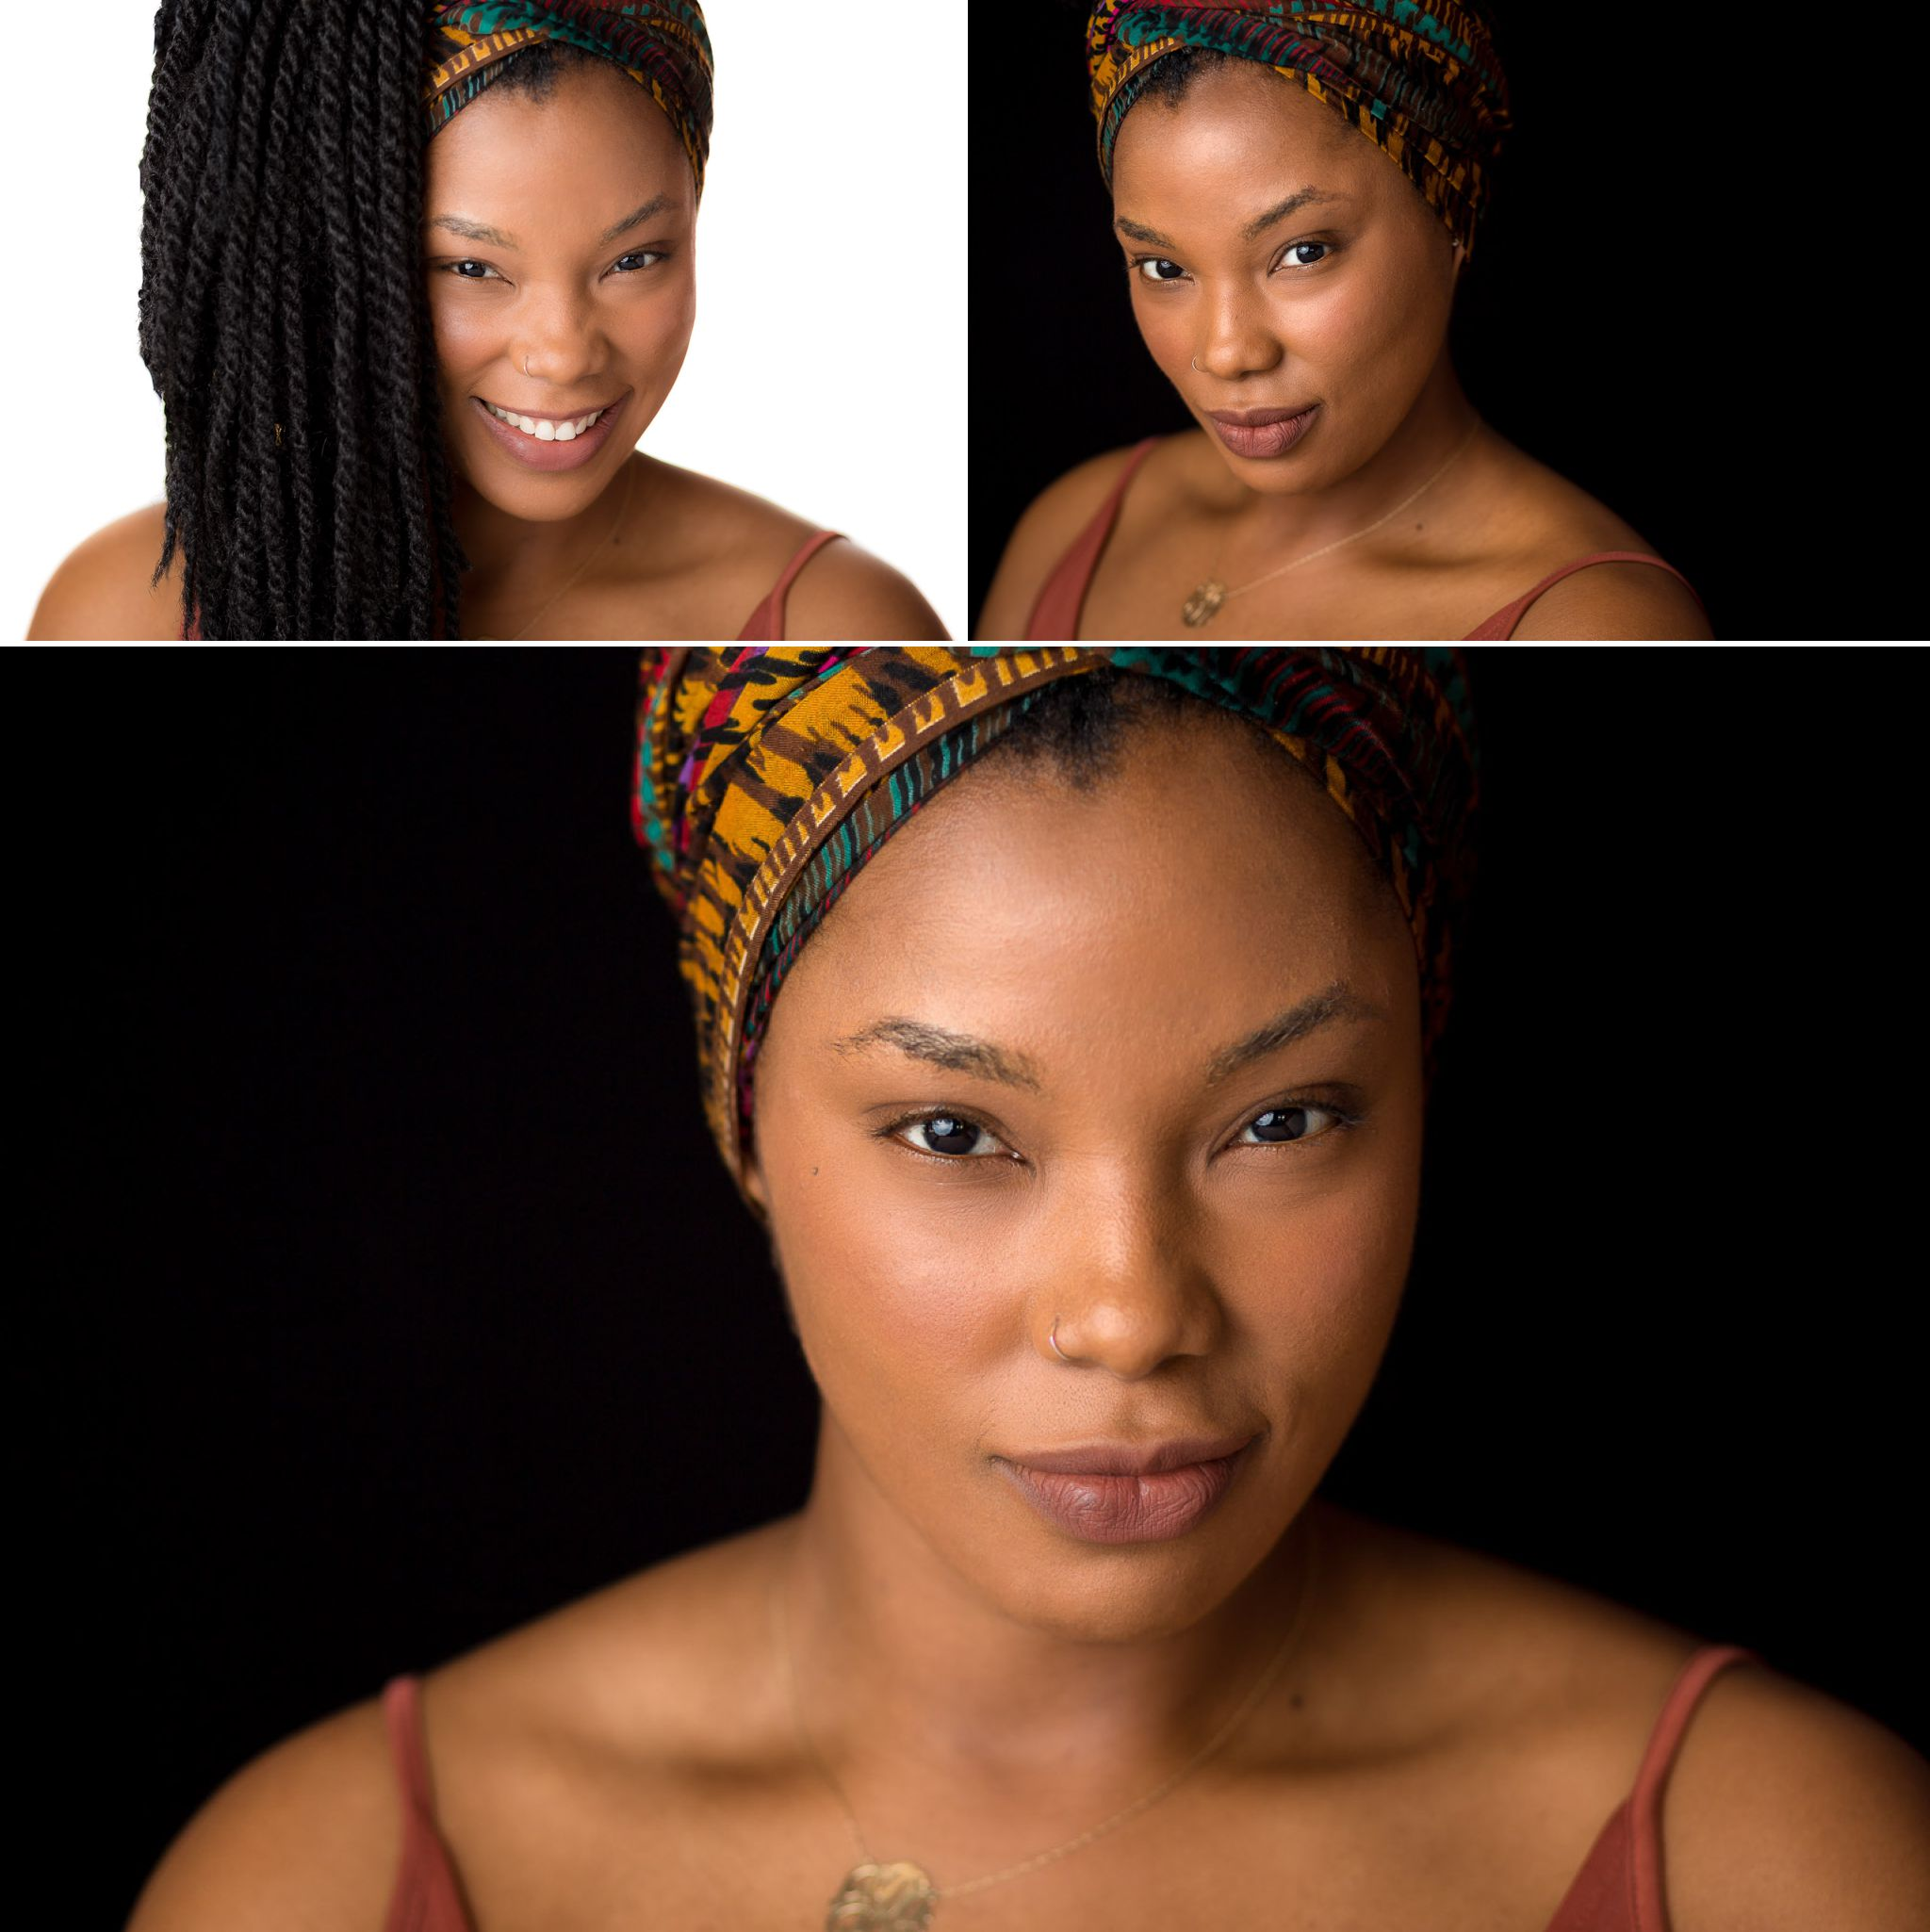 Women 5-Headshots-Washington-DC-Lenzy-Ruffin-Photography.jpg